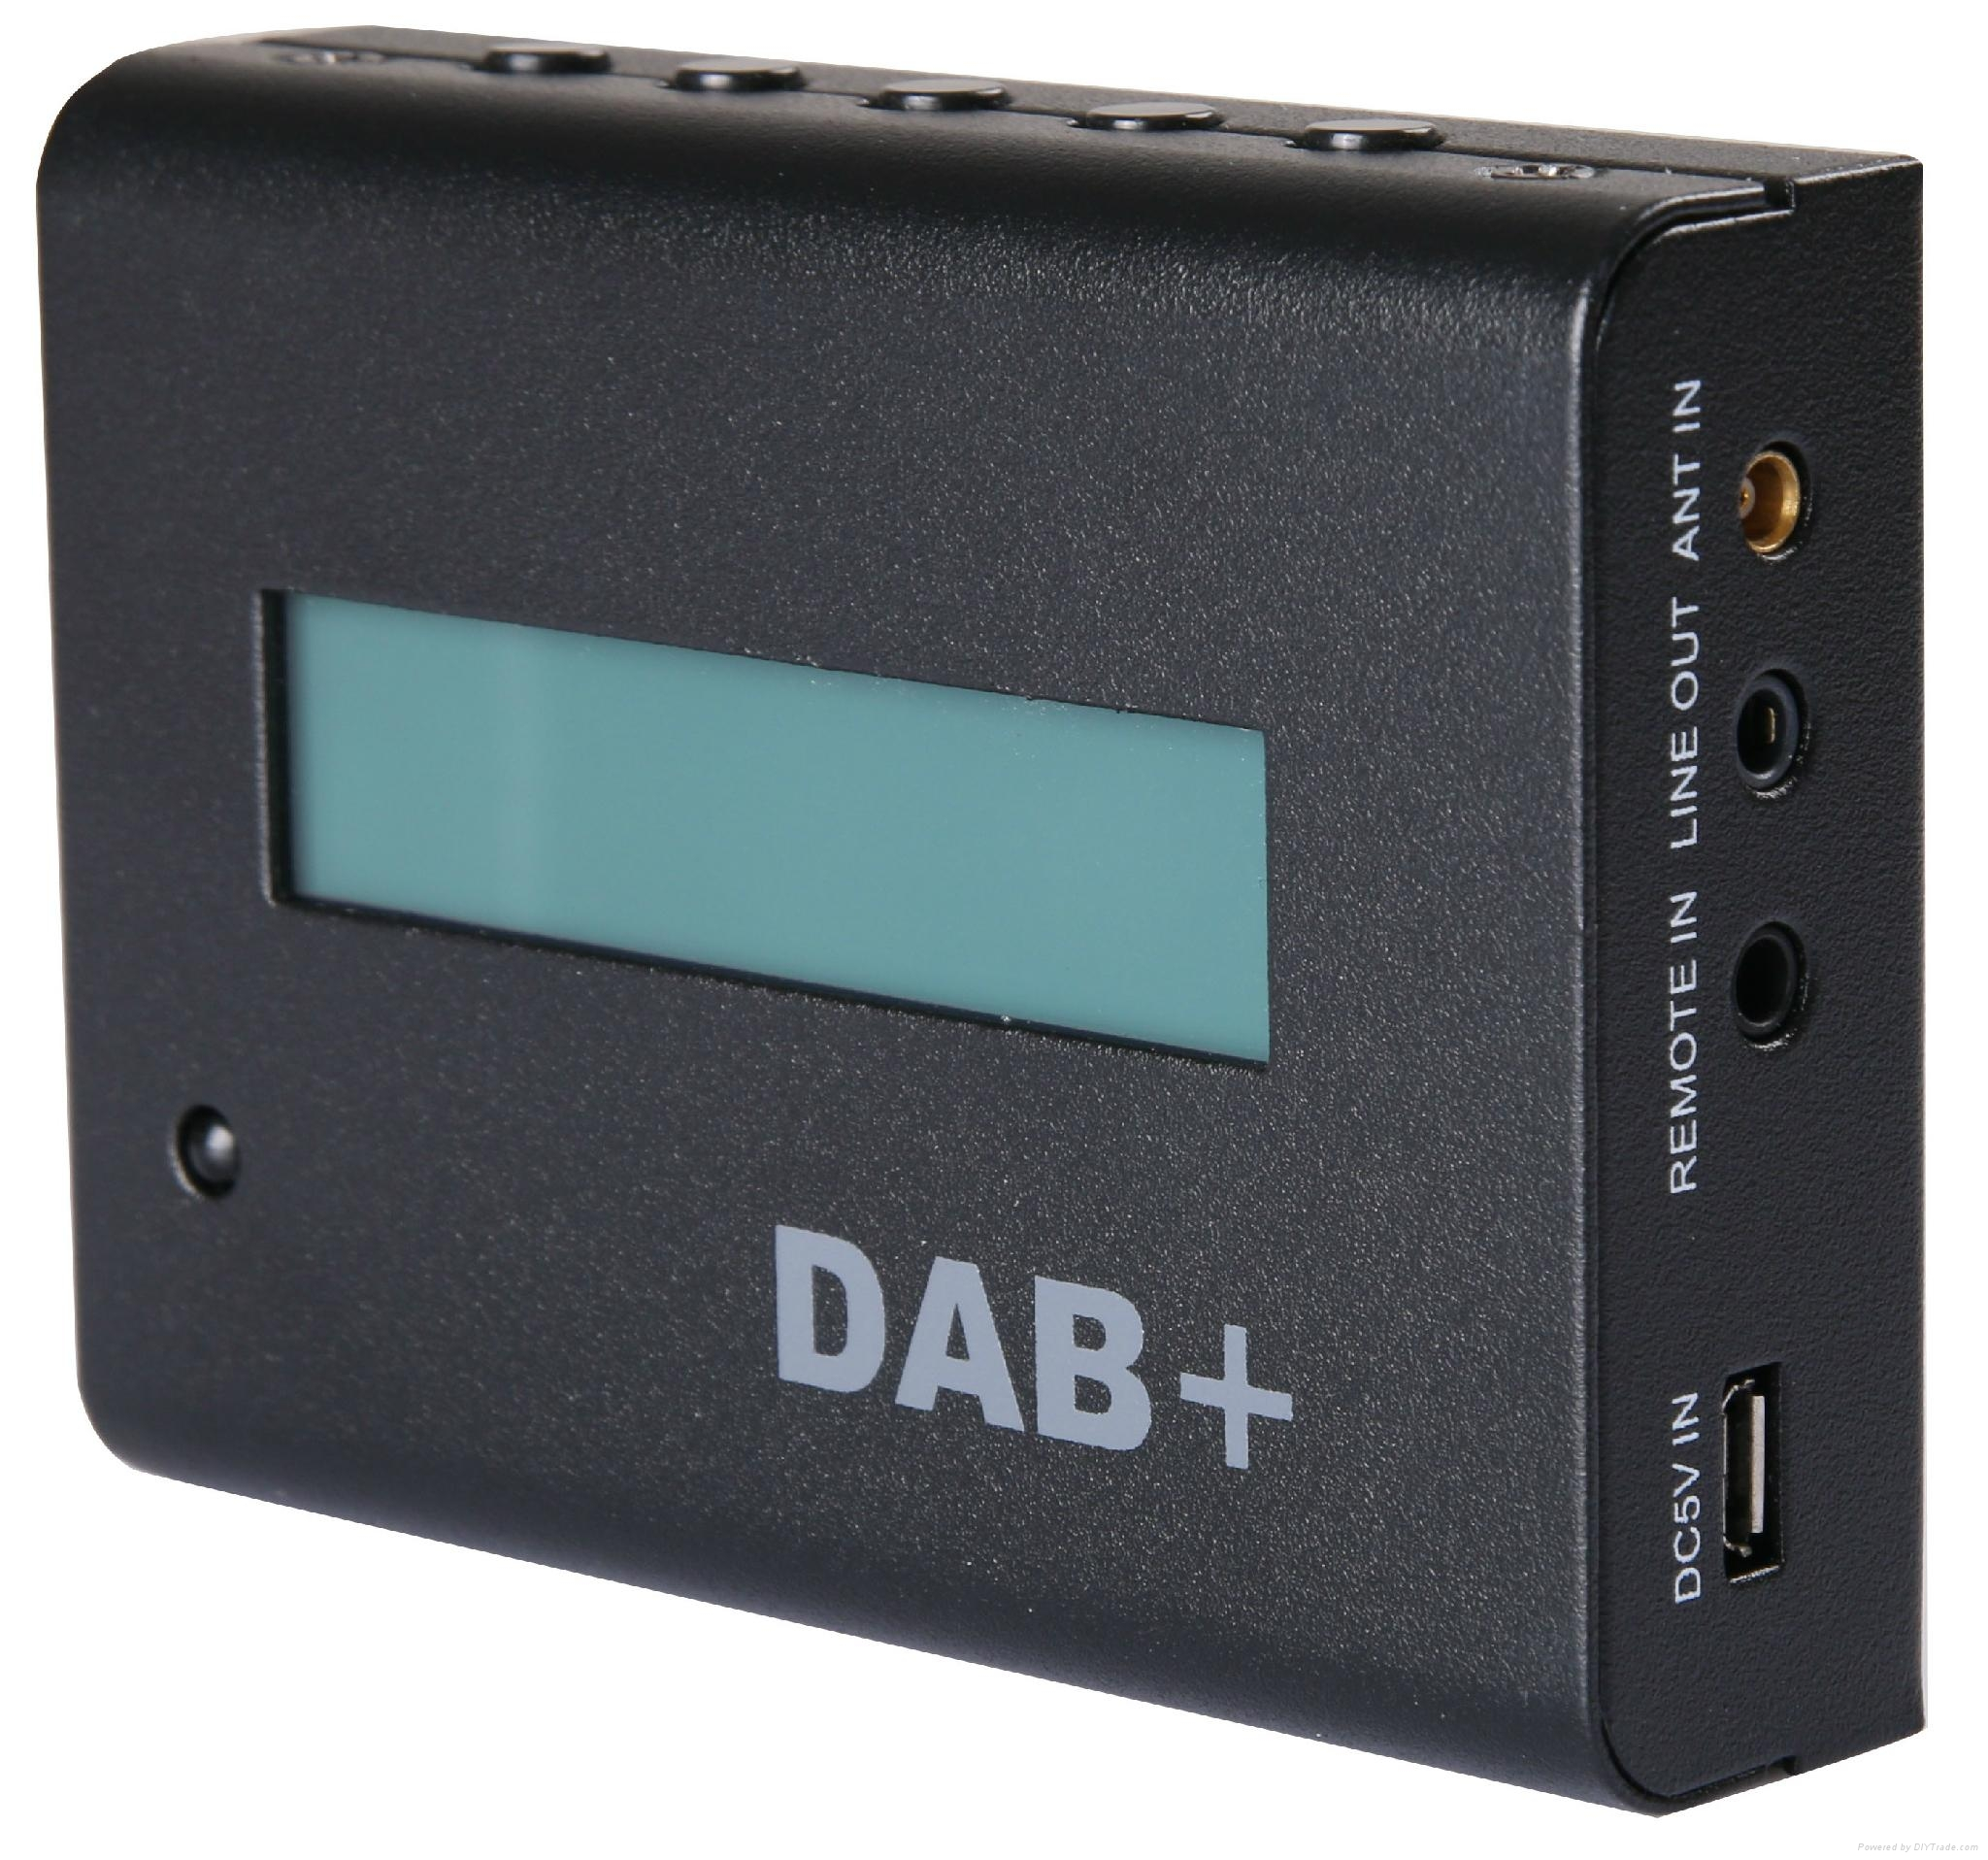 Dab car radio - BD-D01 - NO (China Manufacturer) - Car ...